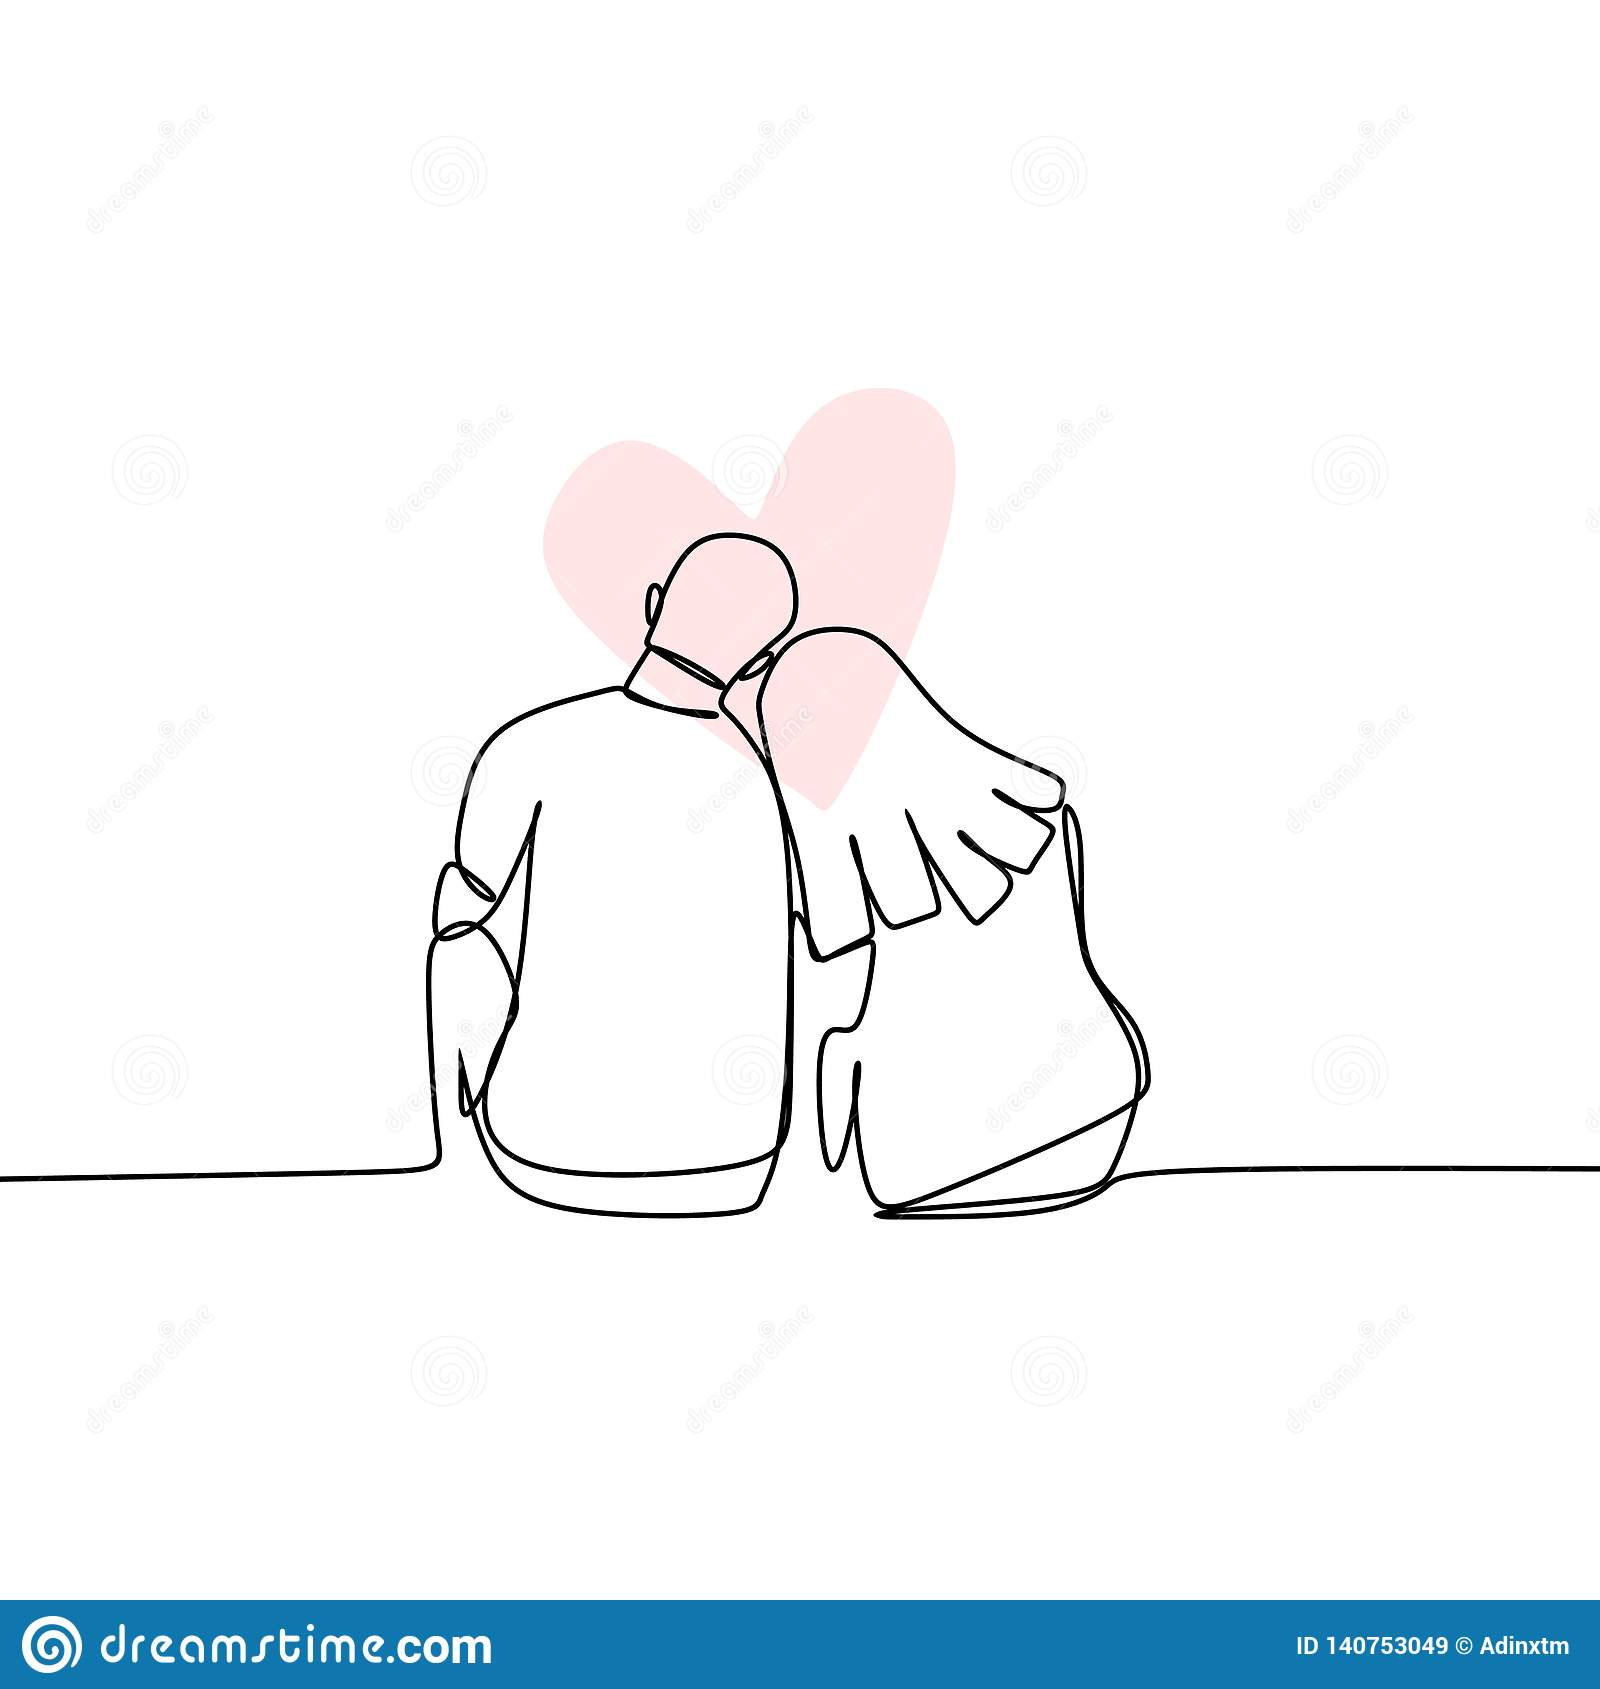 Concept Of Romantic Couple In Love Continuous Line Drawing Vector Illustration Stock Vector Illustration Of Hand Couple 140753049